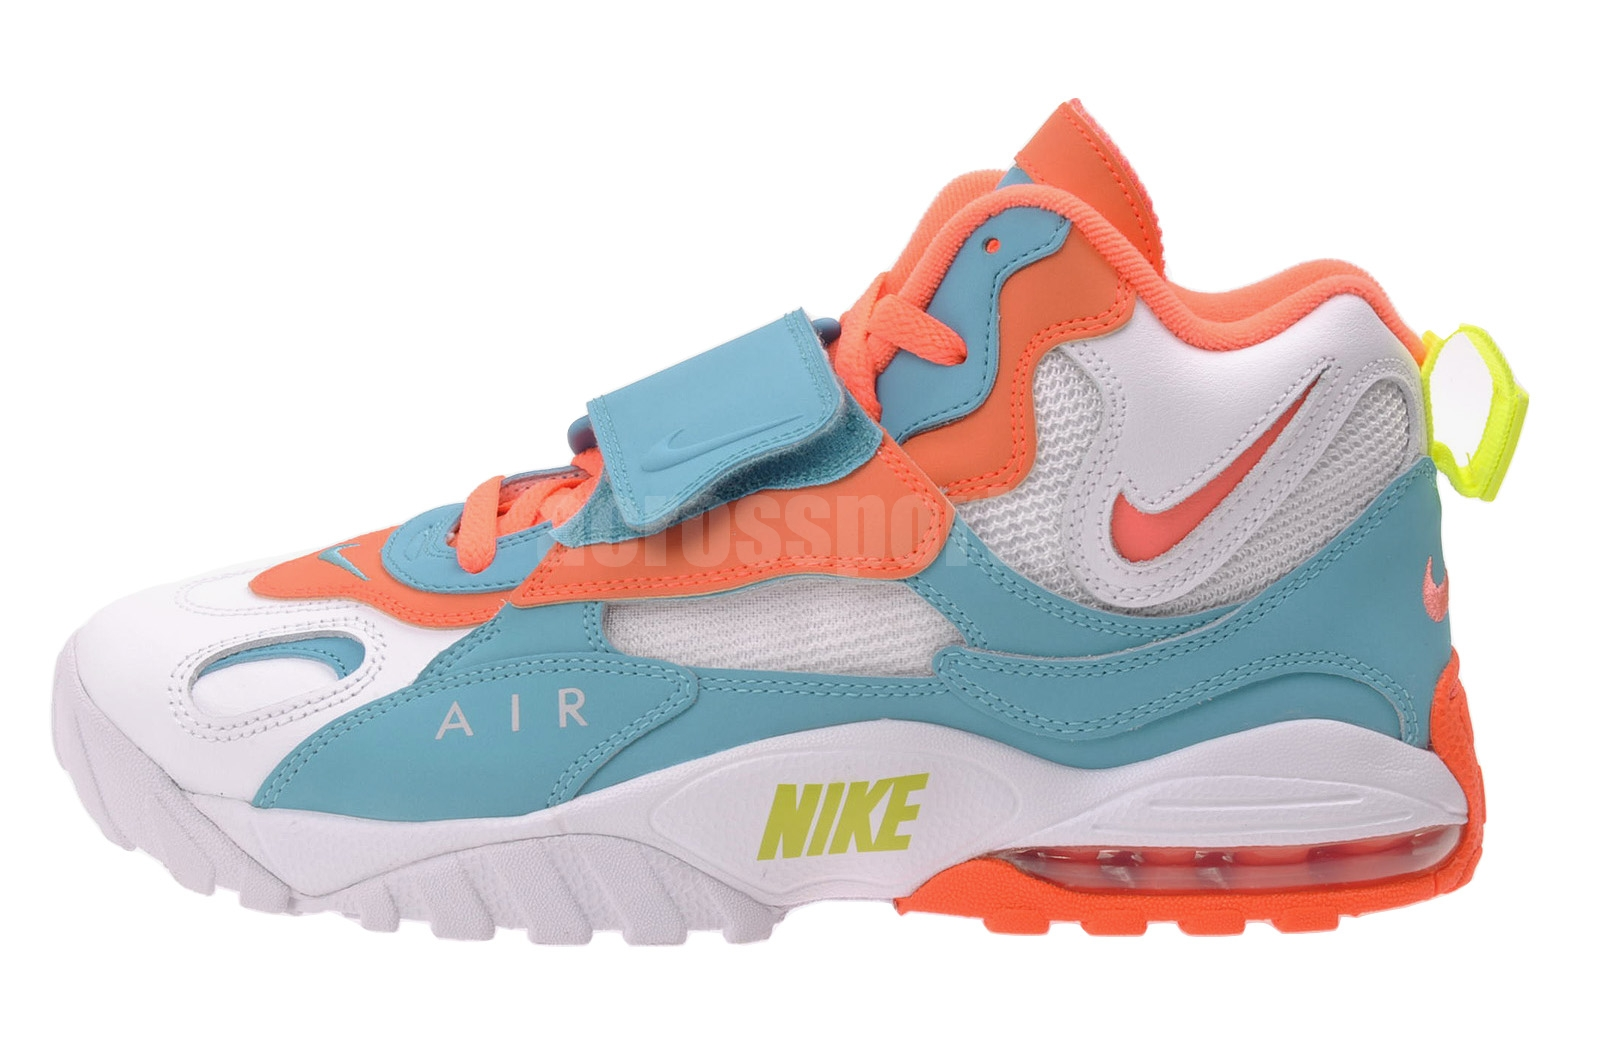 Miami Dolphins Shoes For Sale